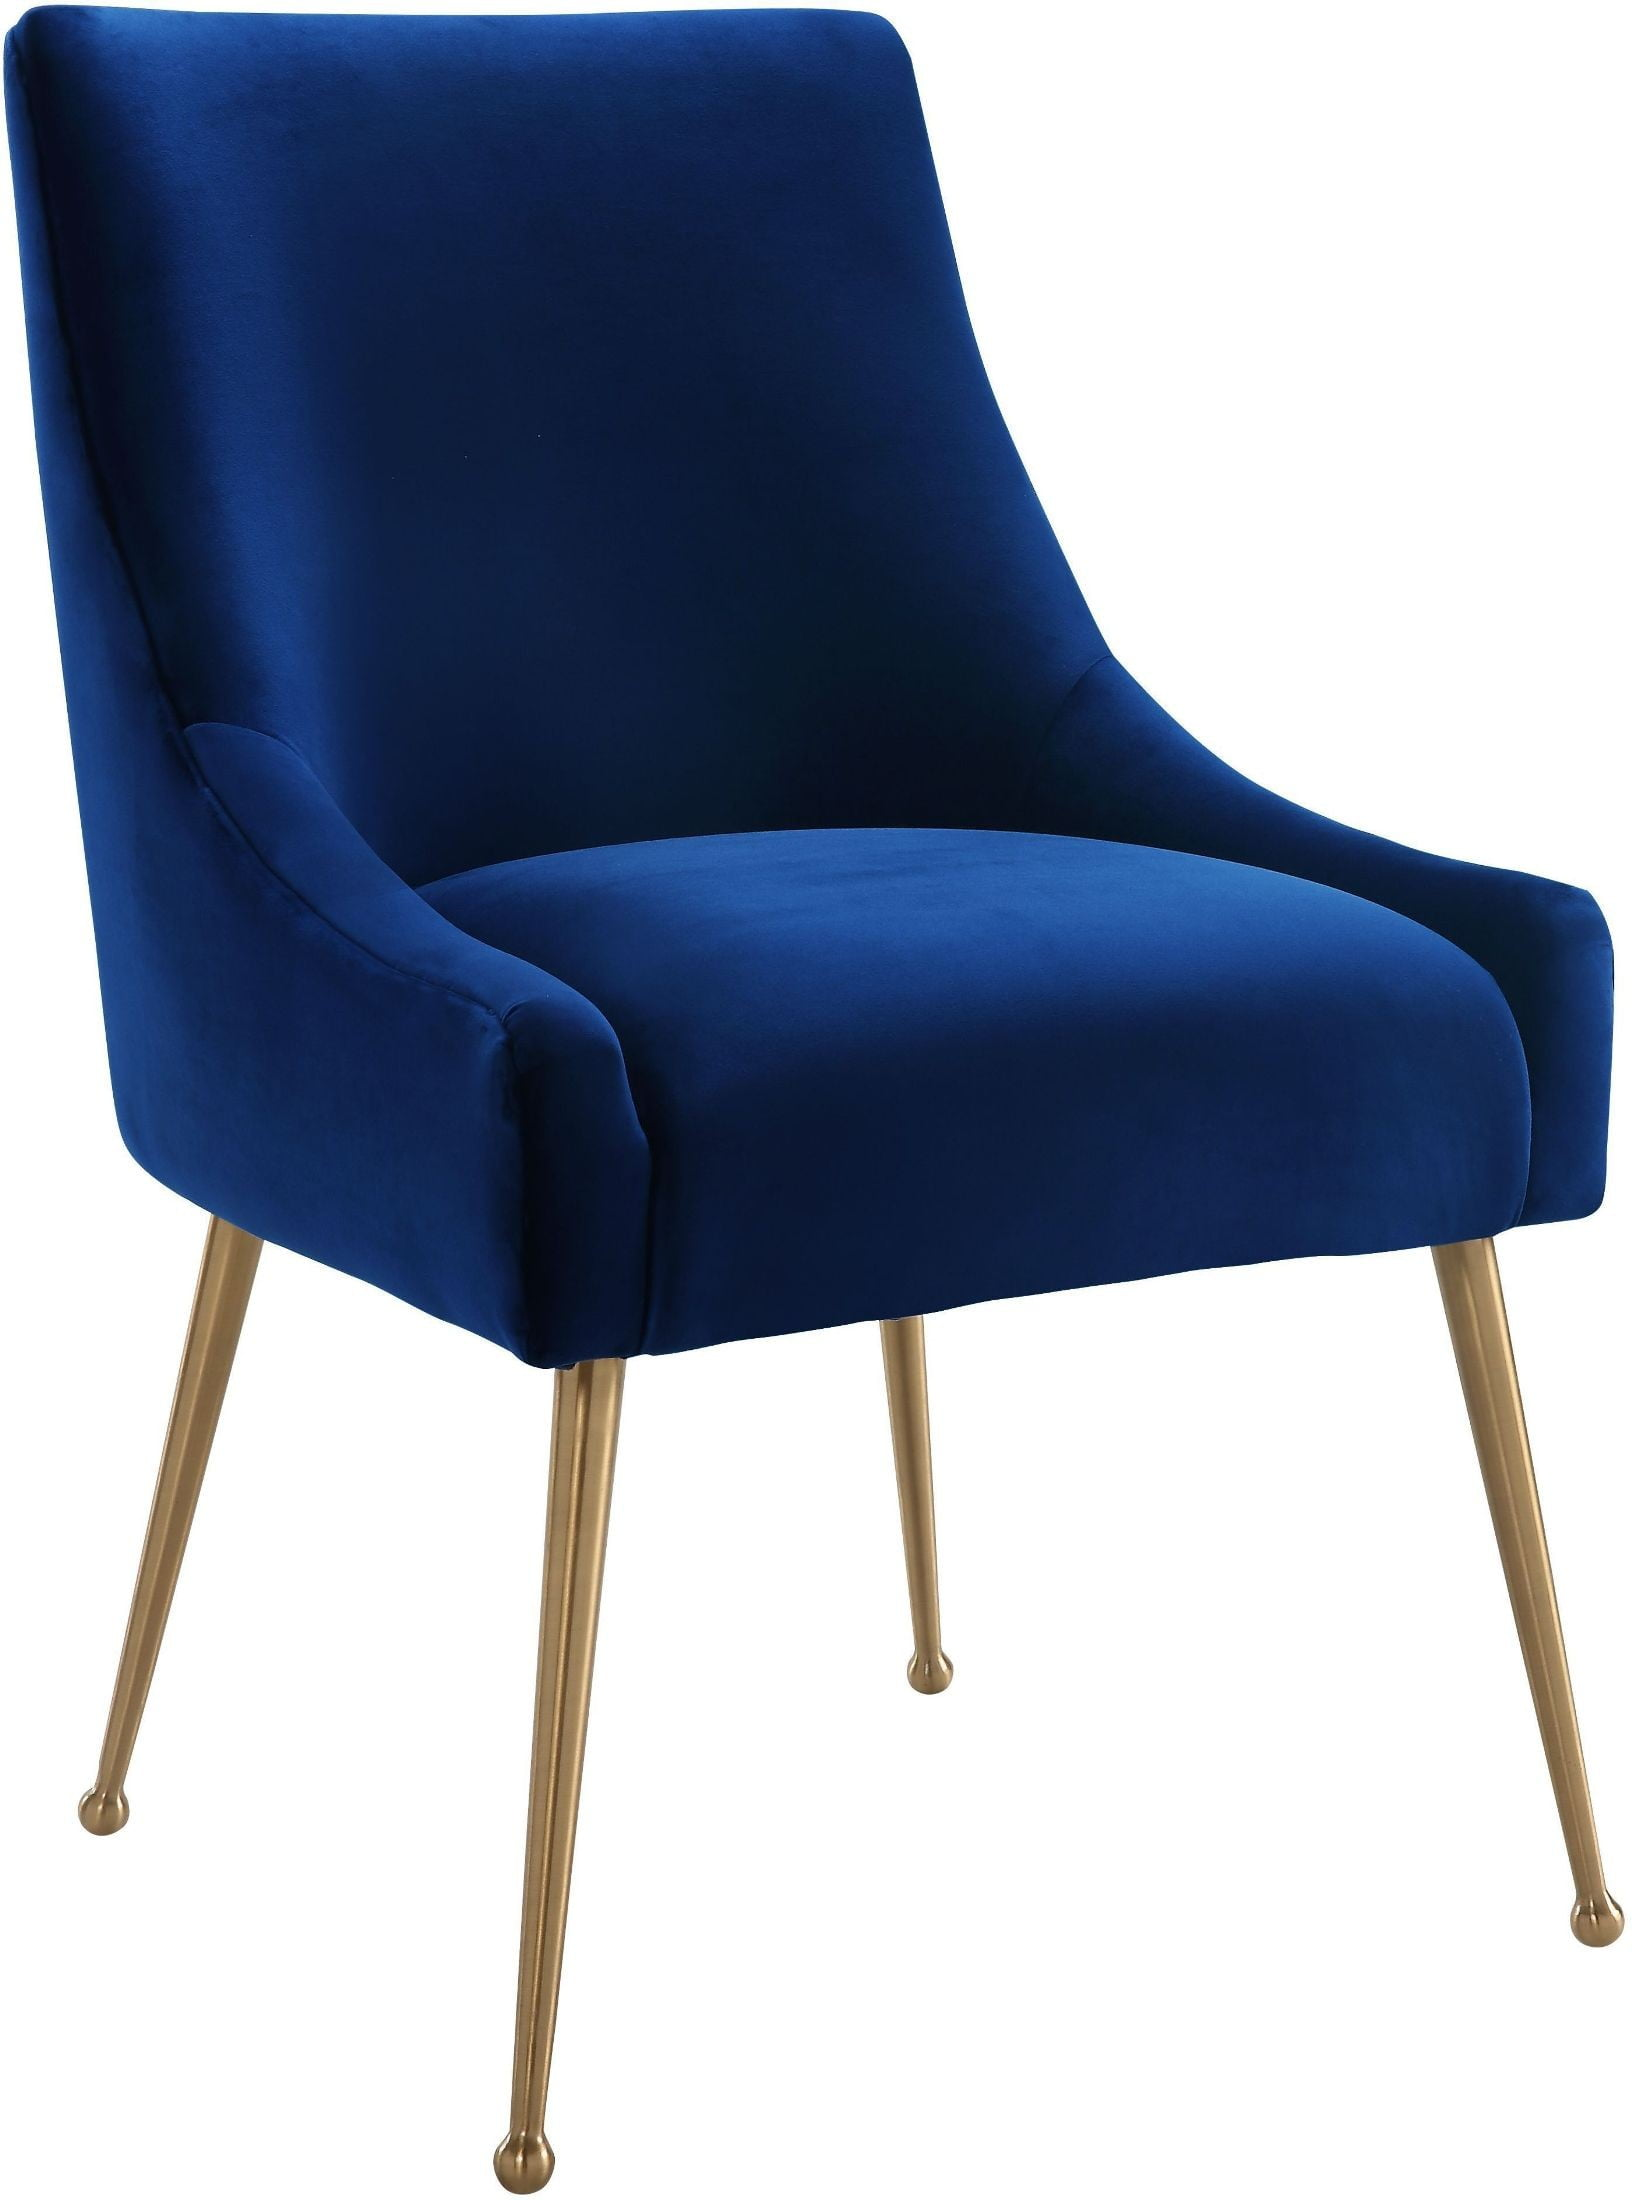 Navy Dining Room Chairs Beatrix Navy Velvet Side Chair D48 Tov Furniture